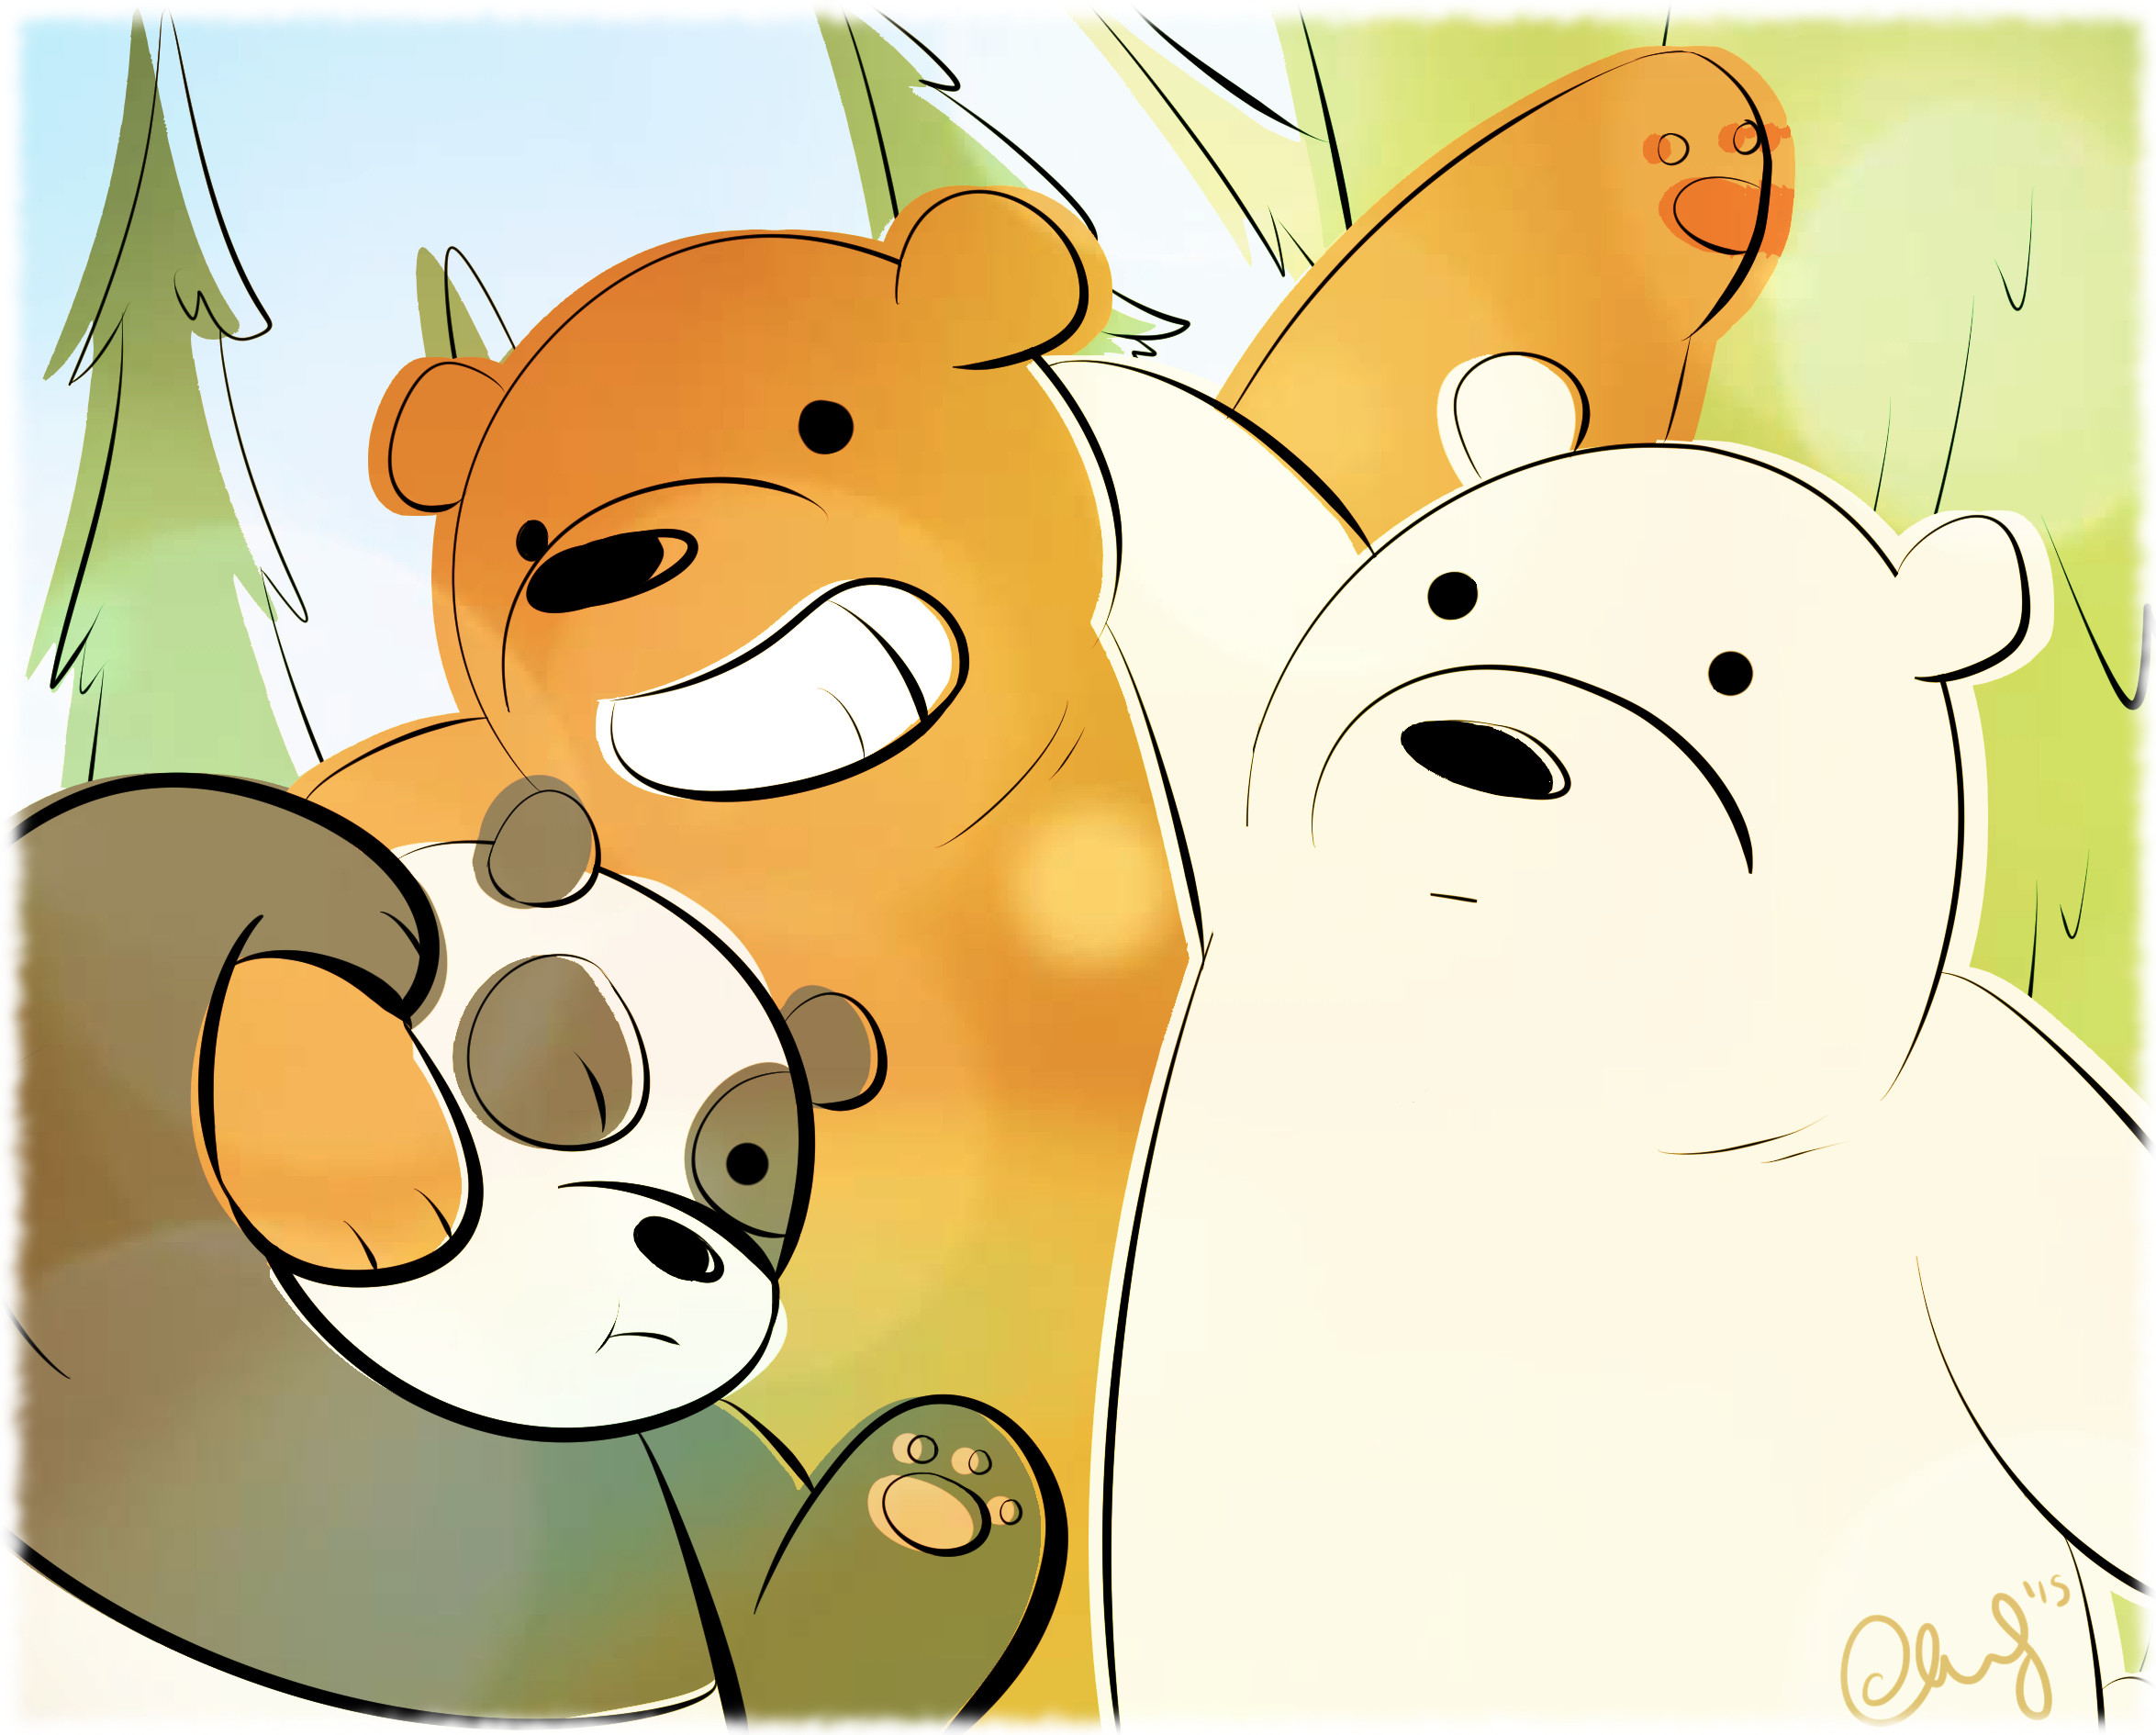 We Bare Bears by ccucco We Bare Bears by ccucco